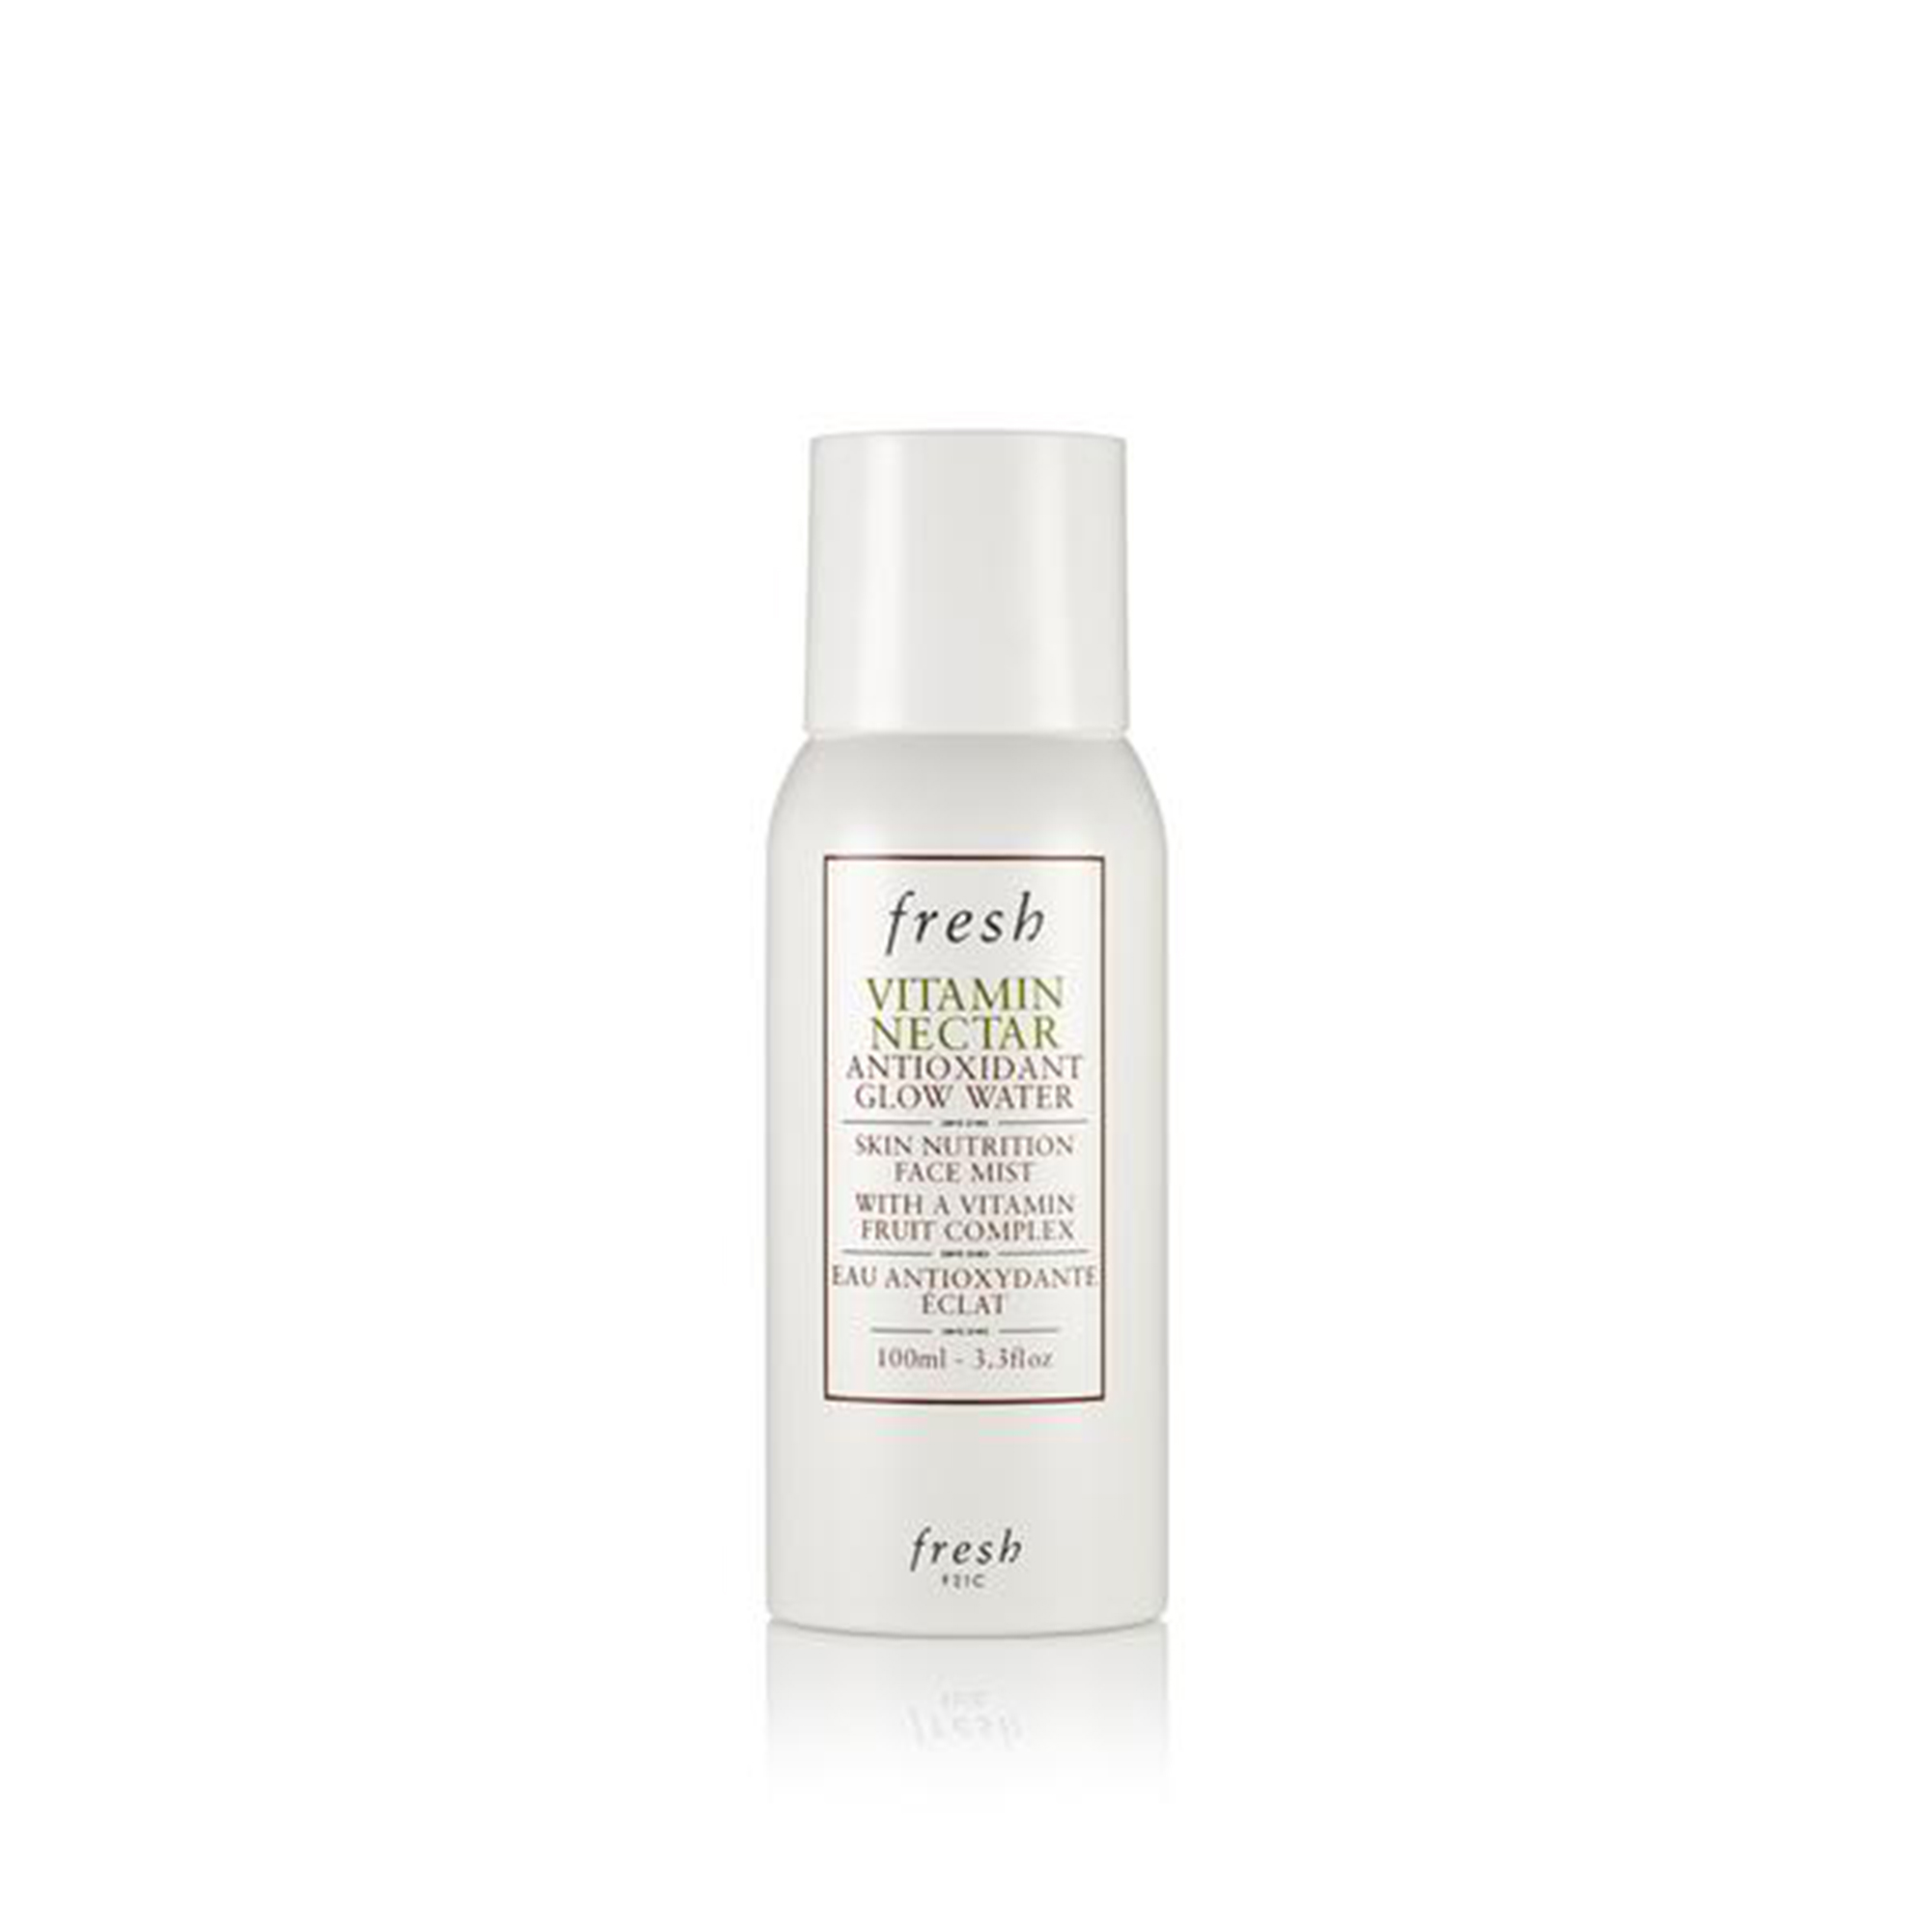 10 Long-Wearing Beauty Products to Up Your Date Night Confidence - Give your complexion (and makeup!) an instant refresh with this portable spritzer that is packed with radiance-boosters like vitamins C, E and B5. $25, sephora.com